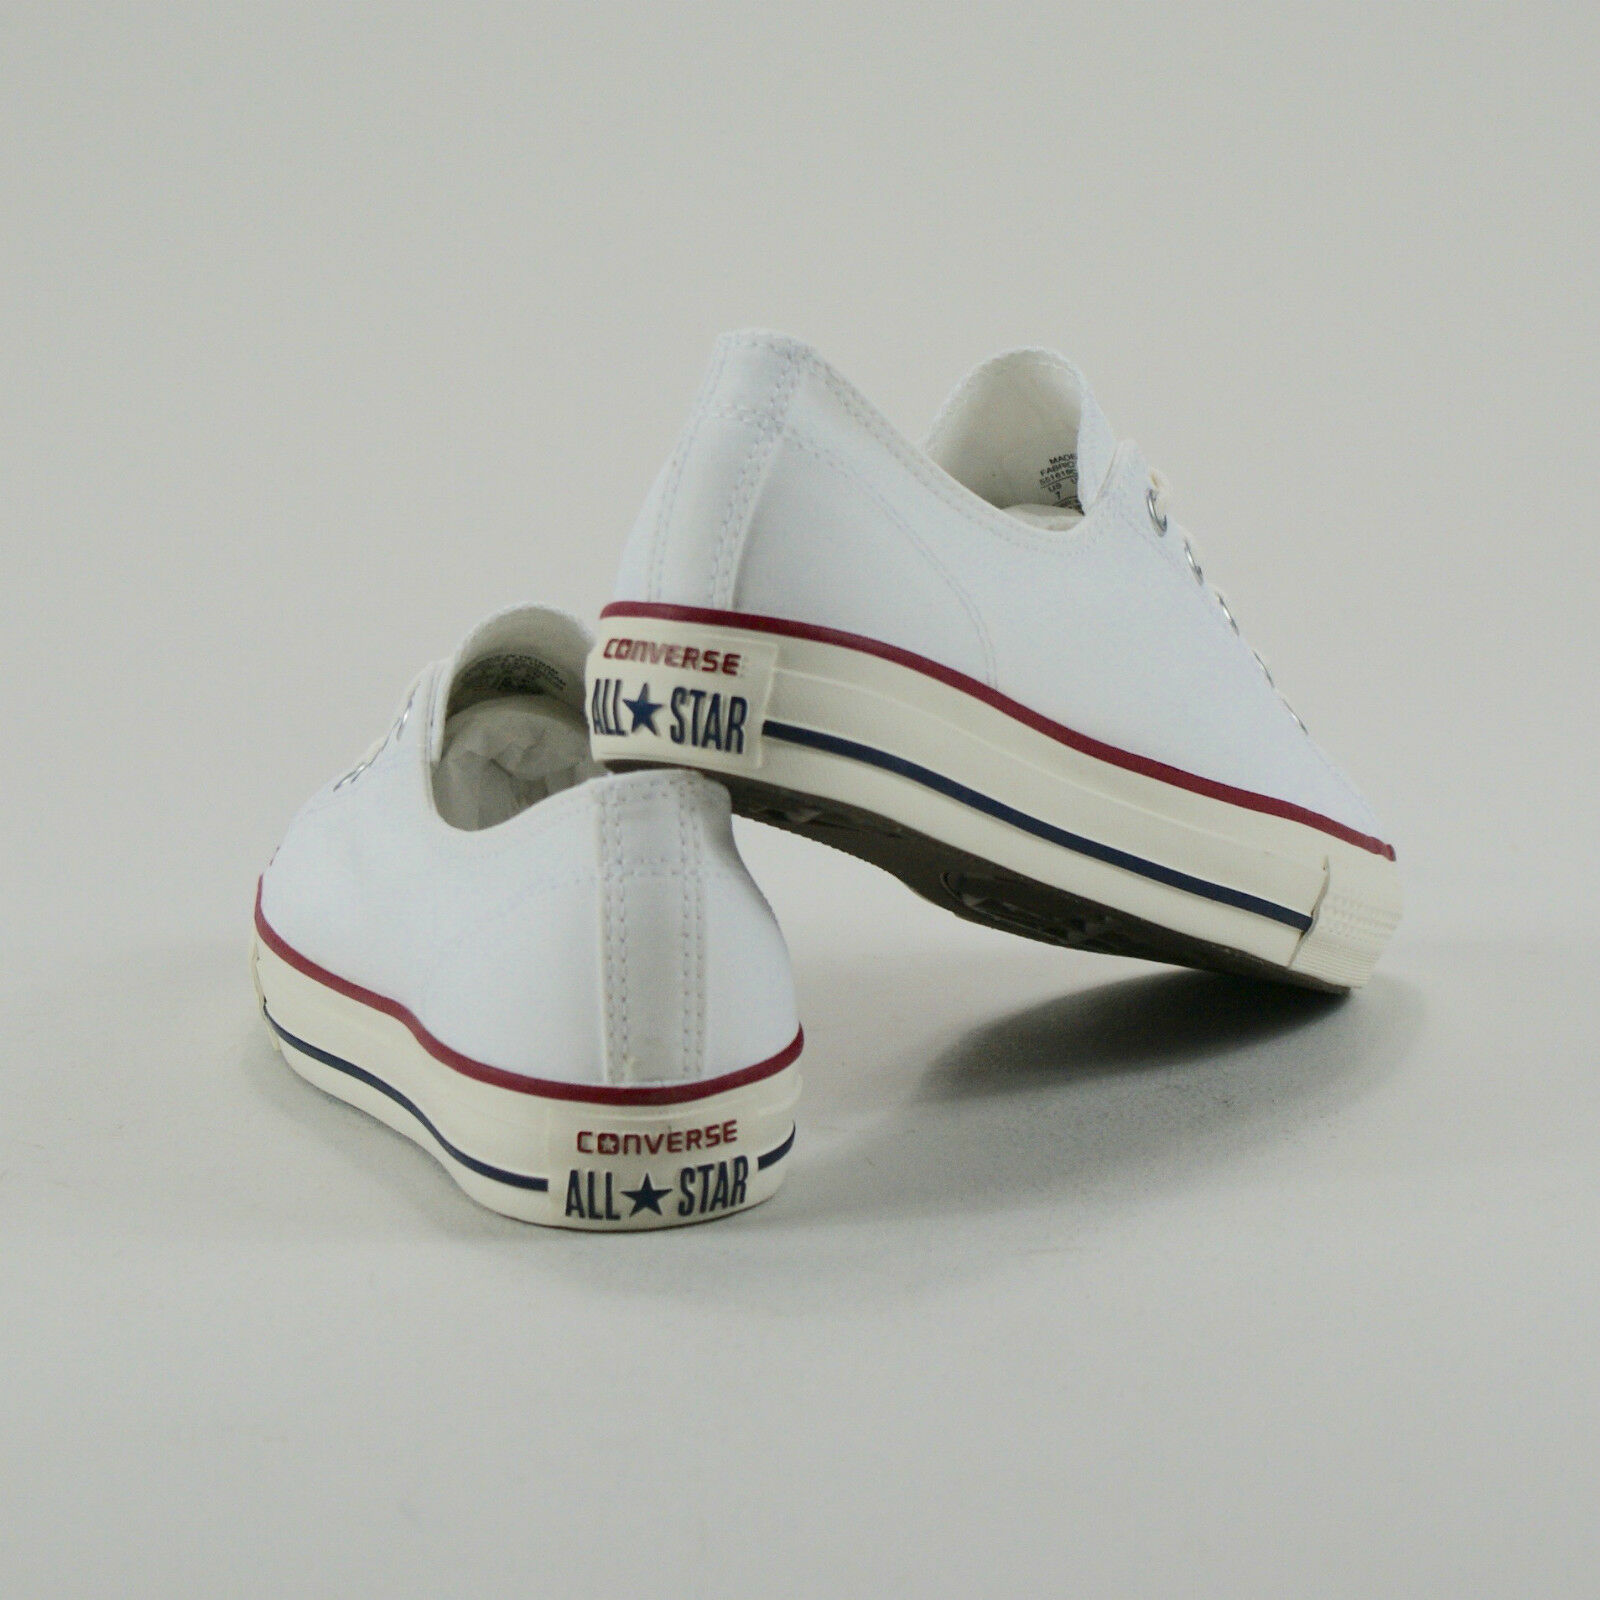 Converse All Star CTAS New High Line Ox Trainers New CTAS in box Size UK sizes 4,5,6,7,8 65d37d